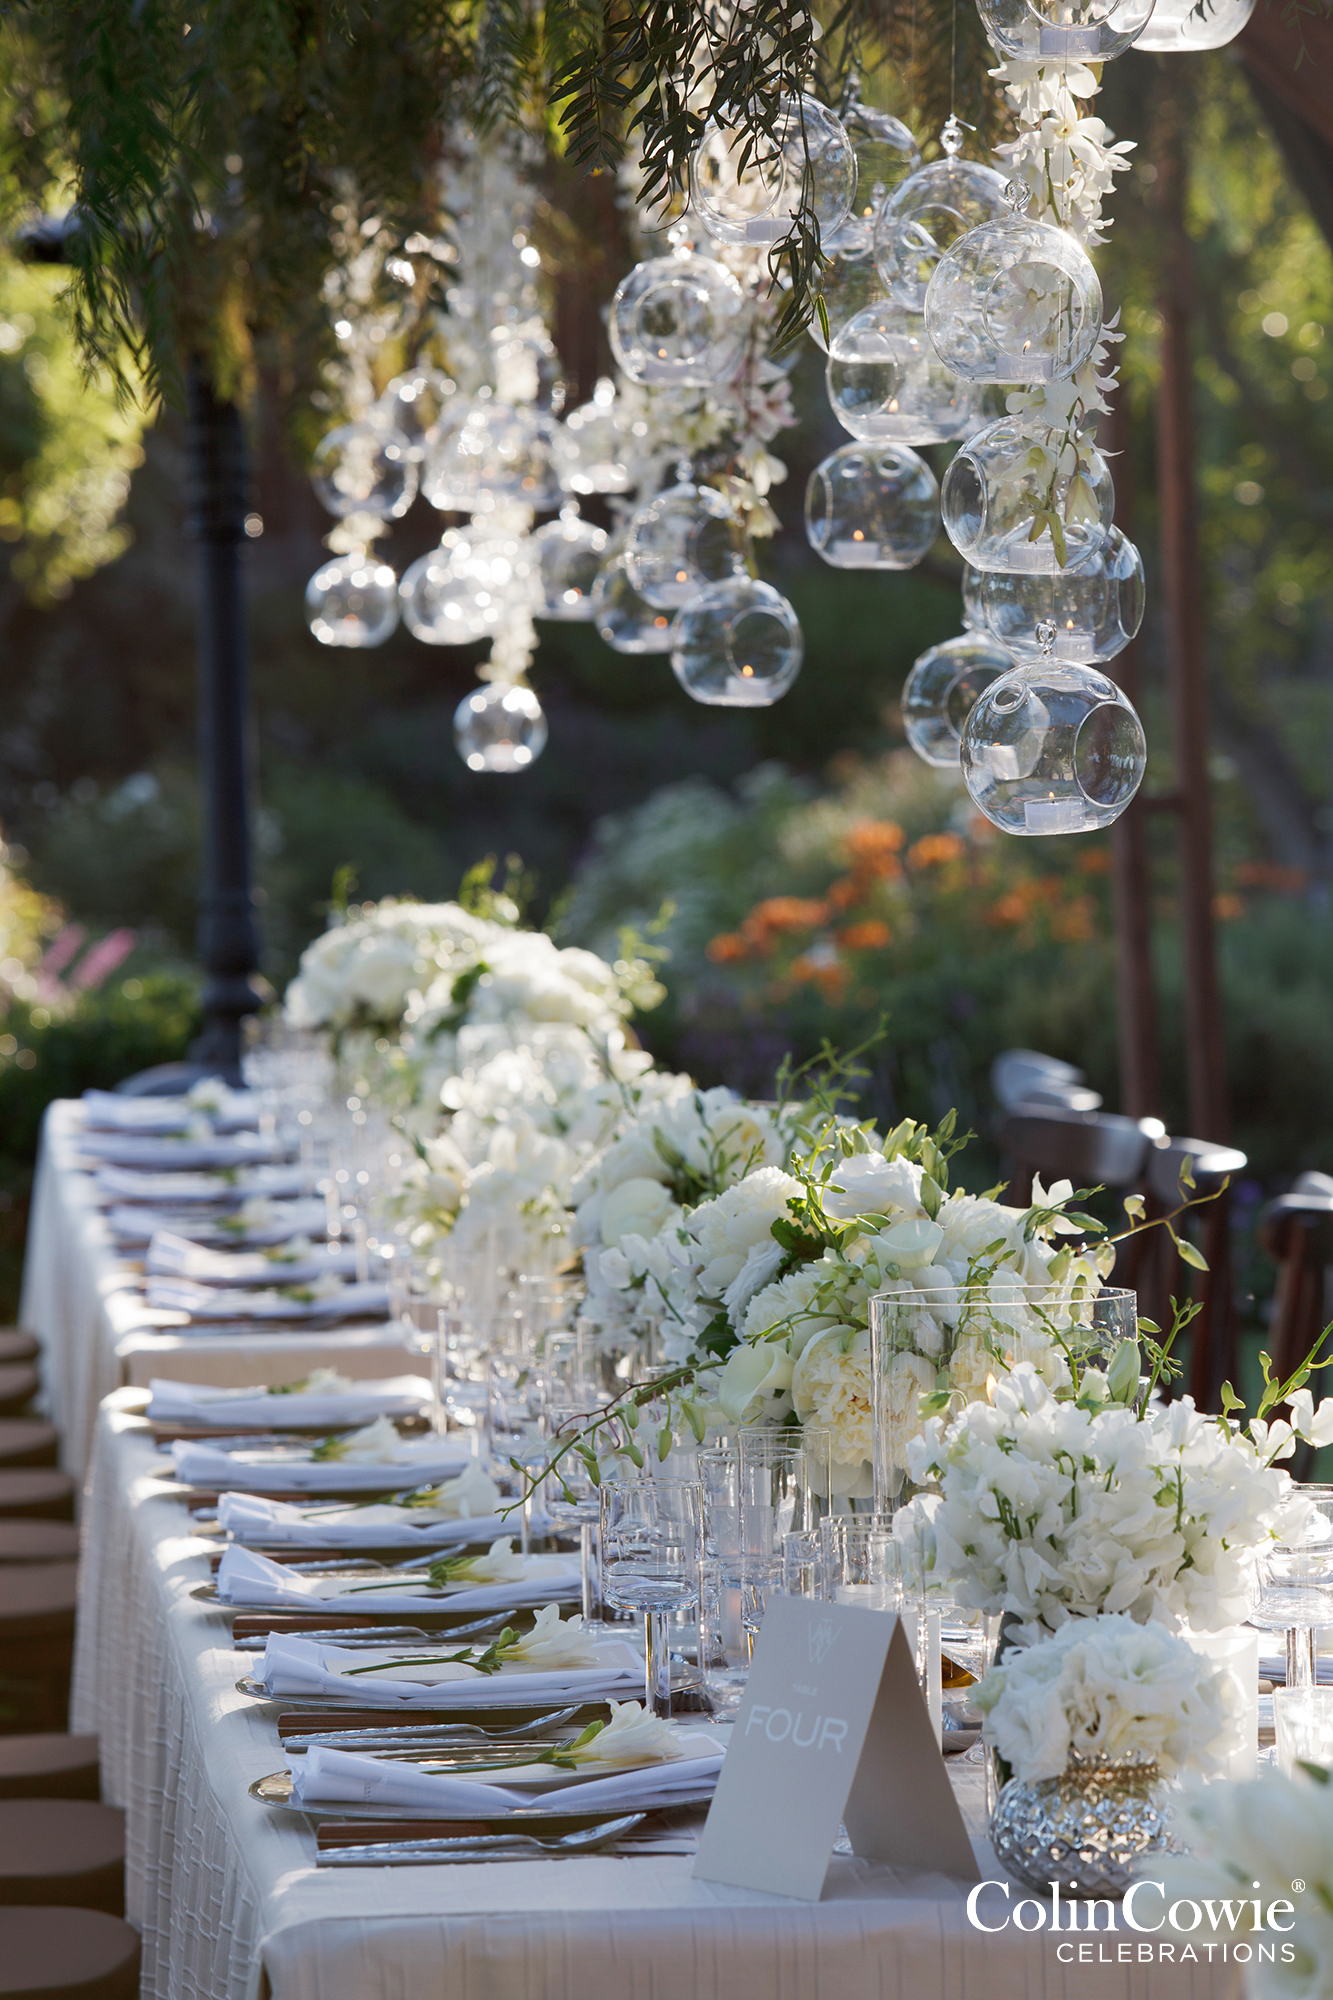 Banquet tables set for an outdoor welcome dinner